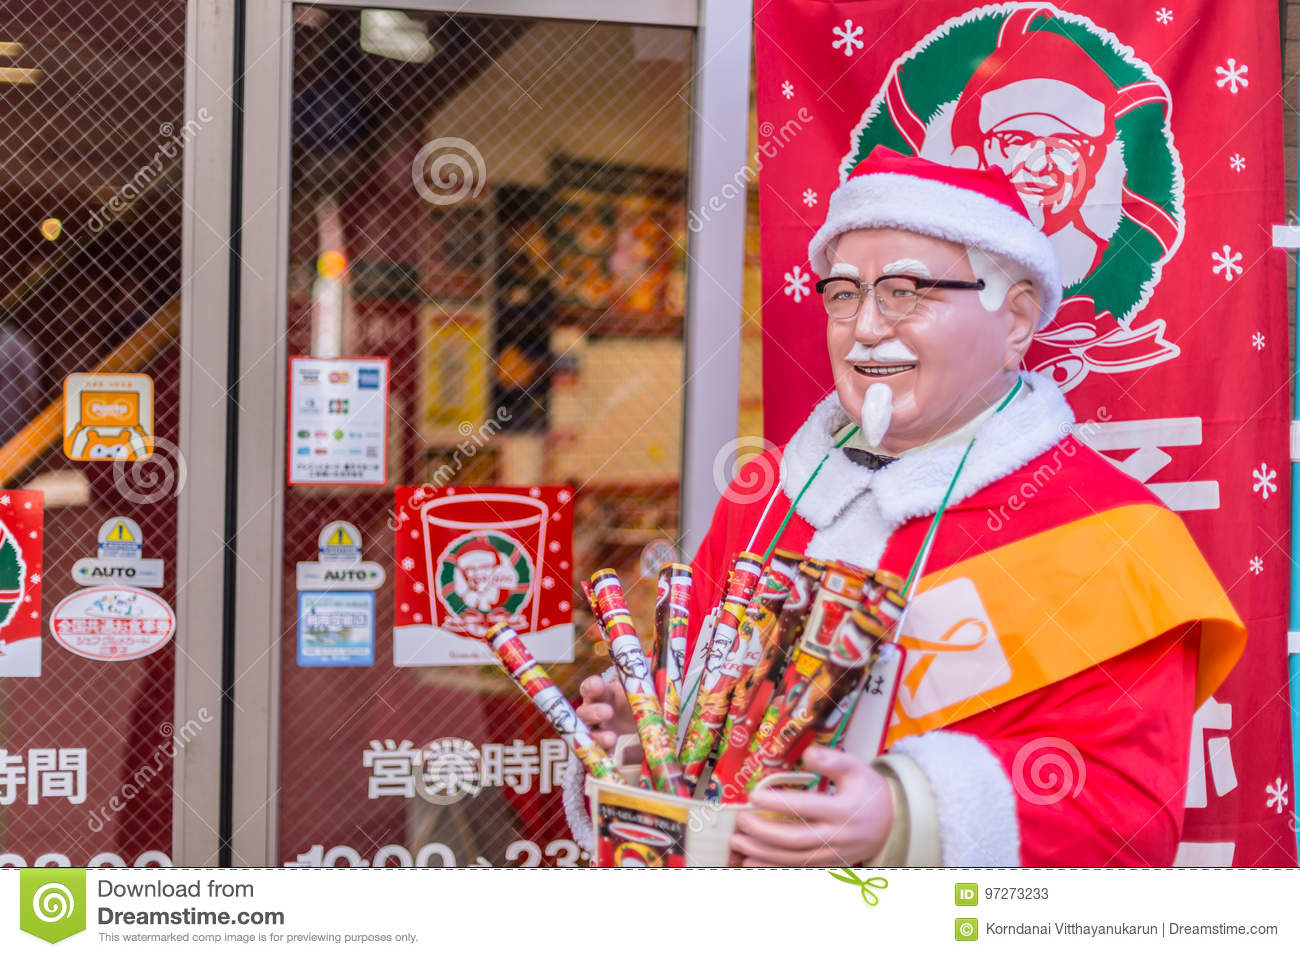 Kentucky Fried Chicken Or KFC In Japan Decoration In Santa Cause In ...